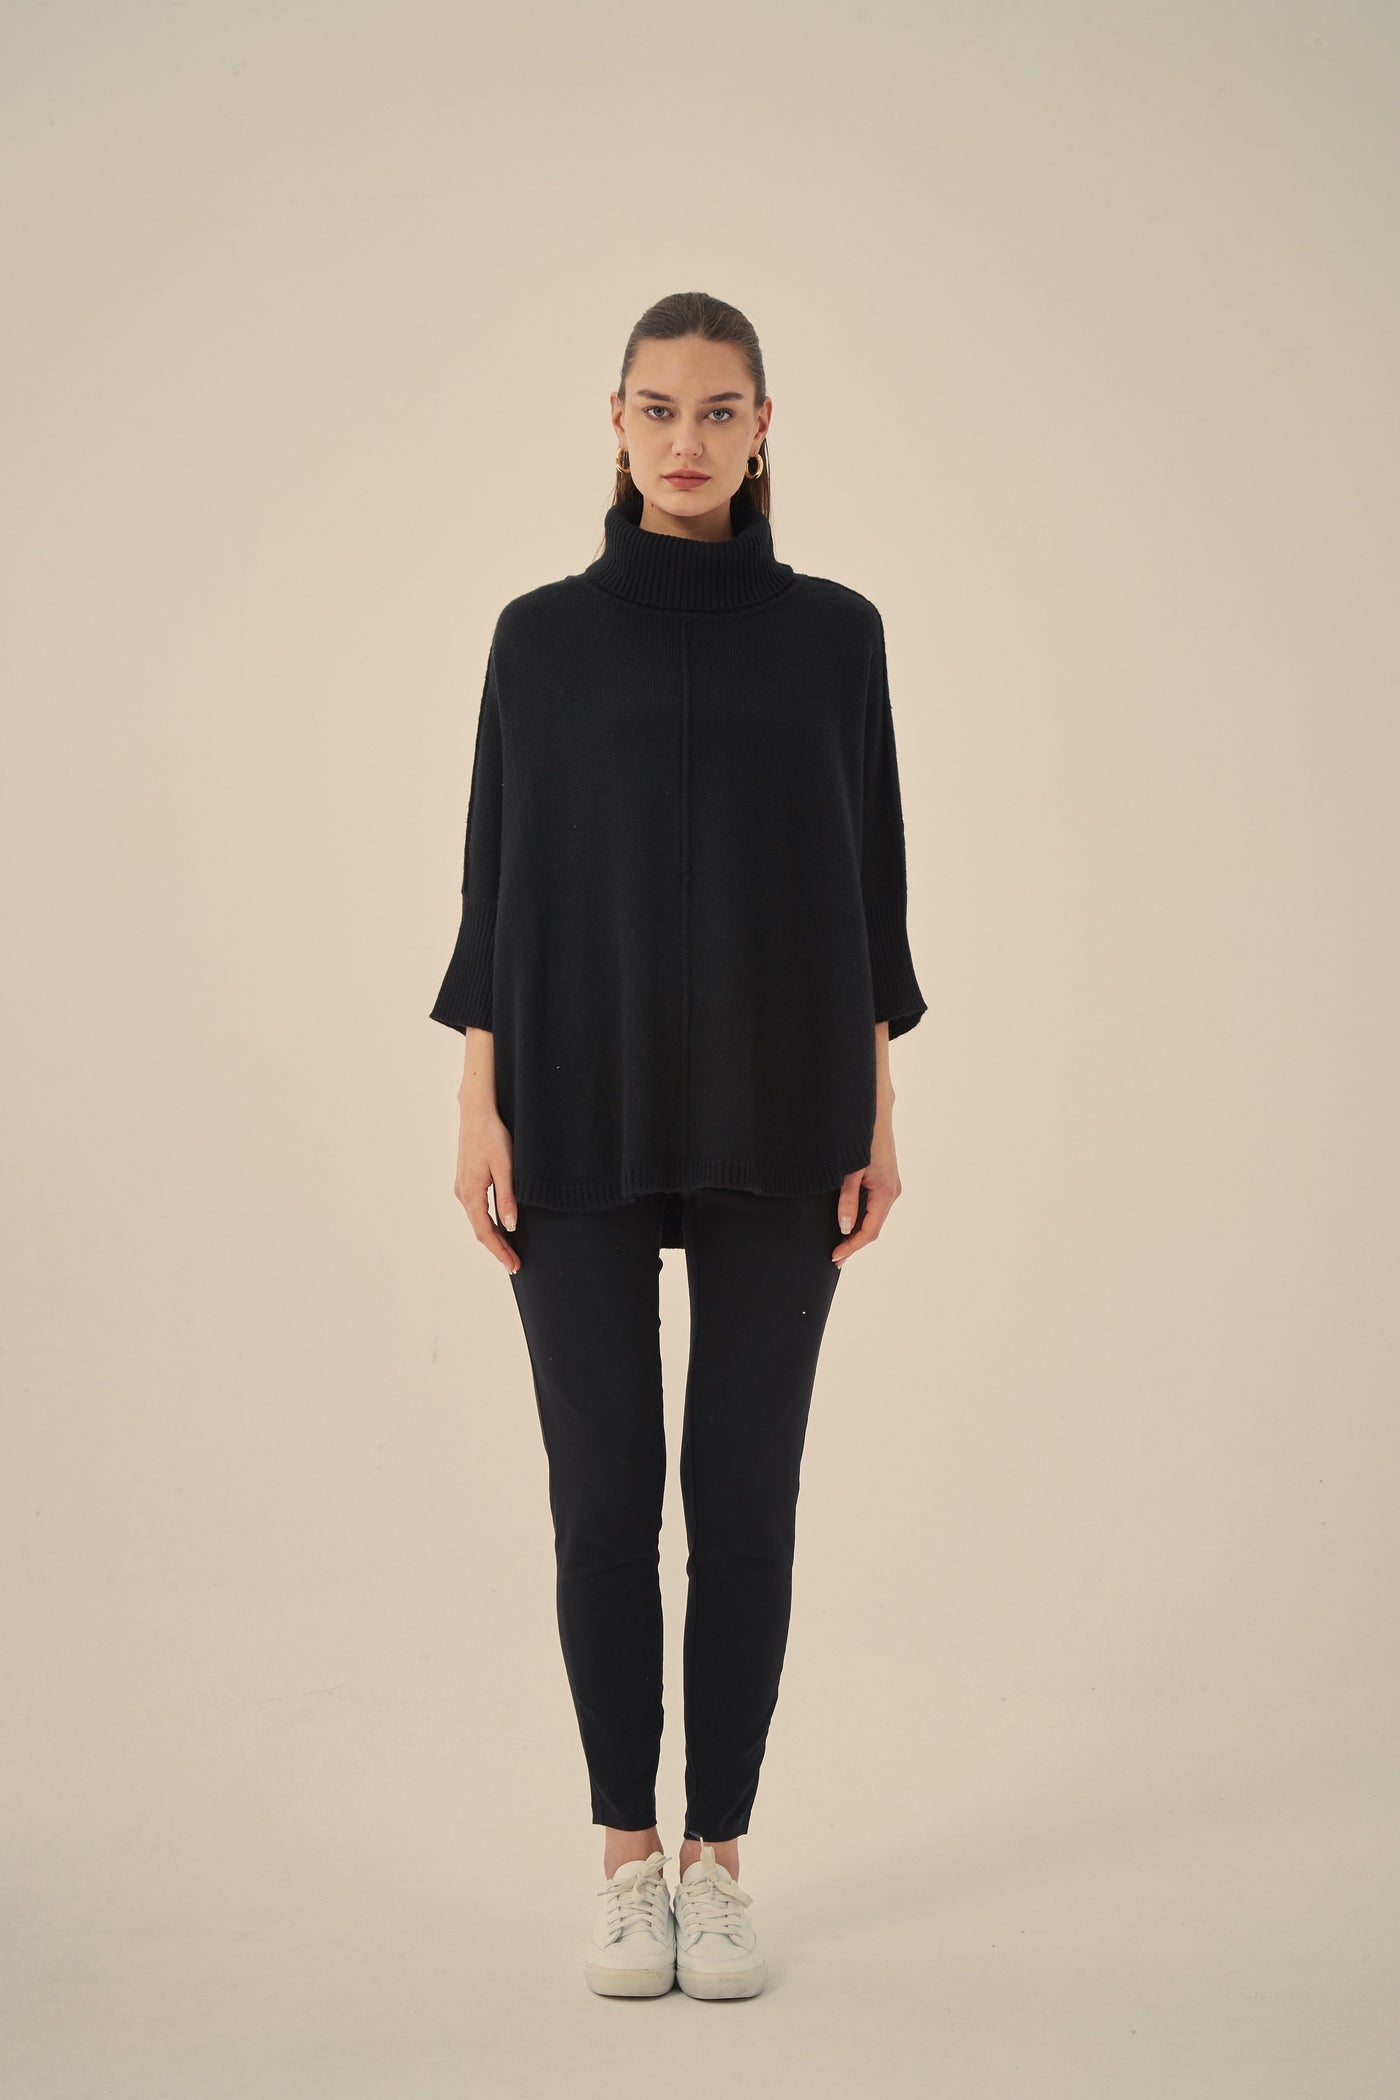 Half Sleeve Cotton Knit- Black